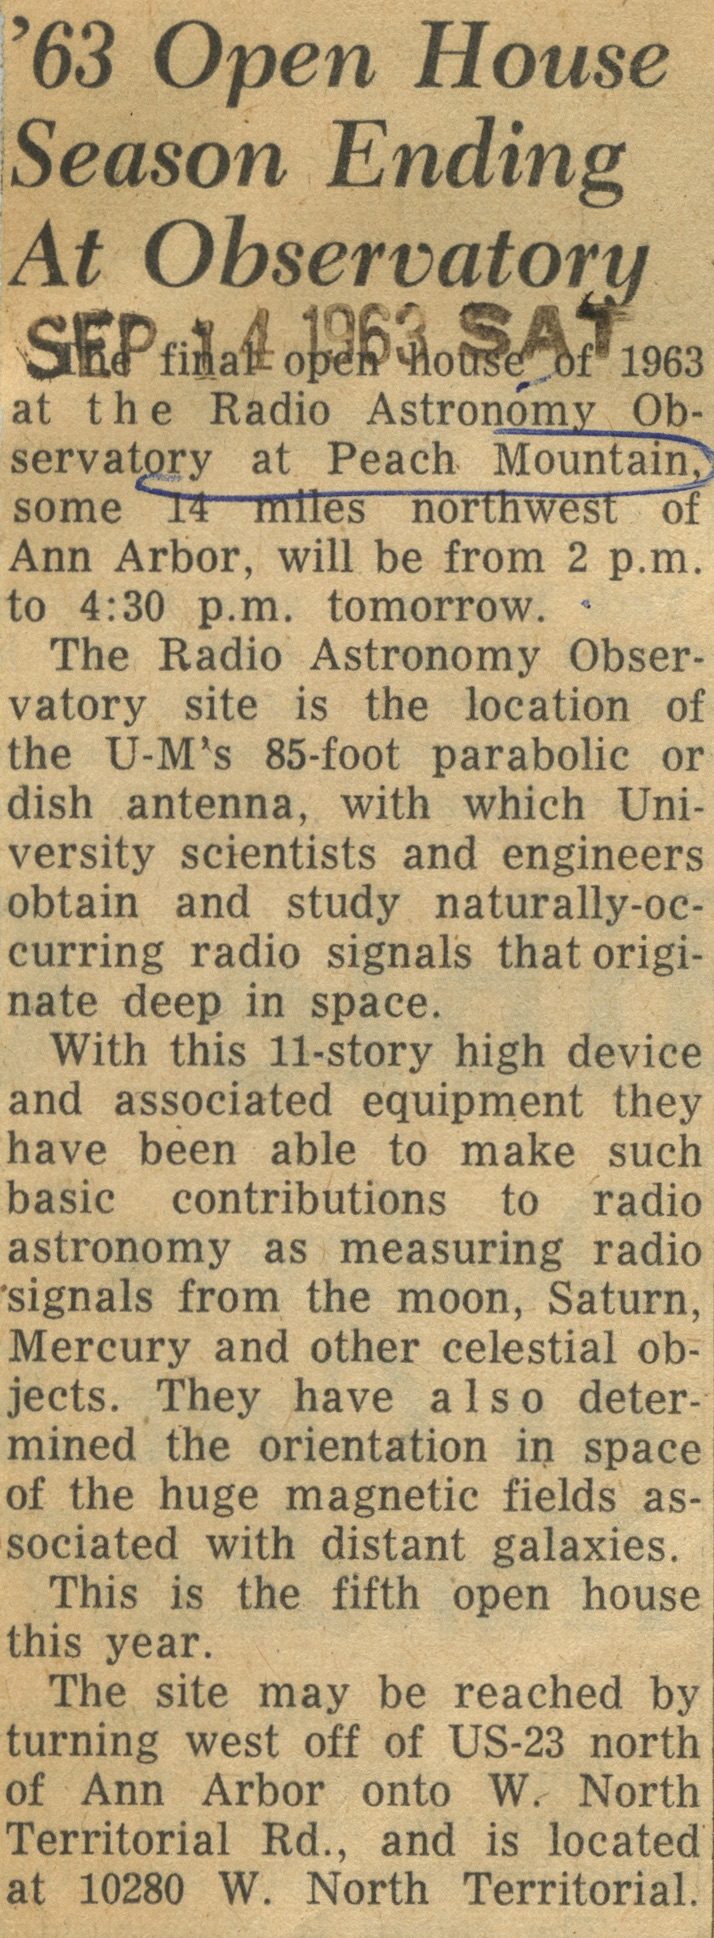 '63 Open House Season Ending At Observatory image